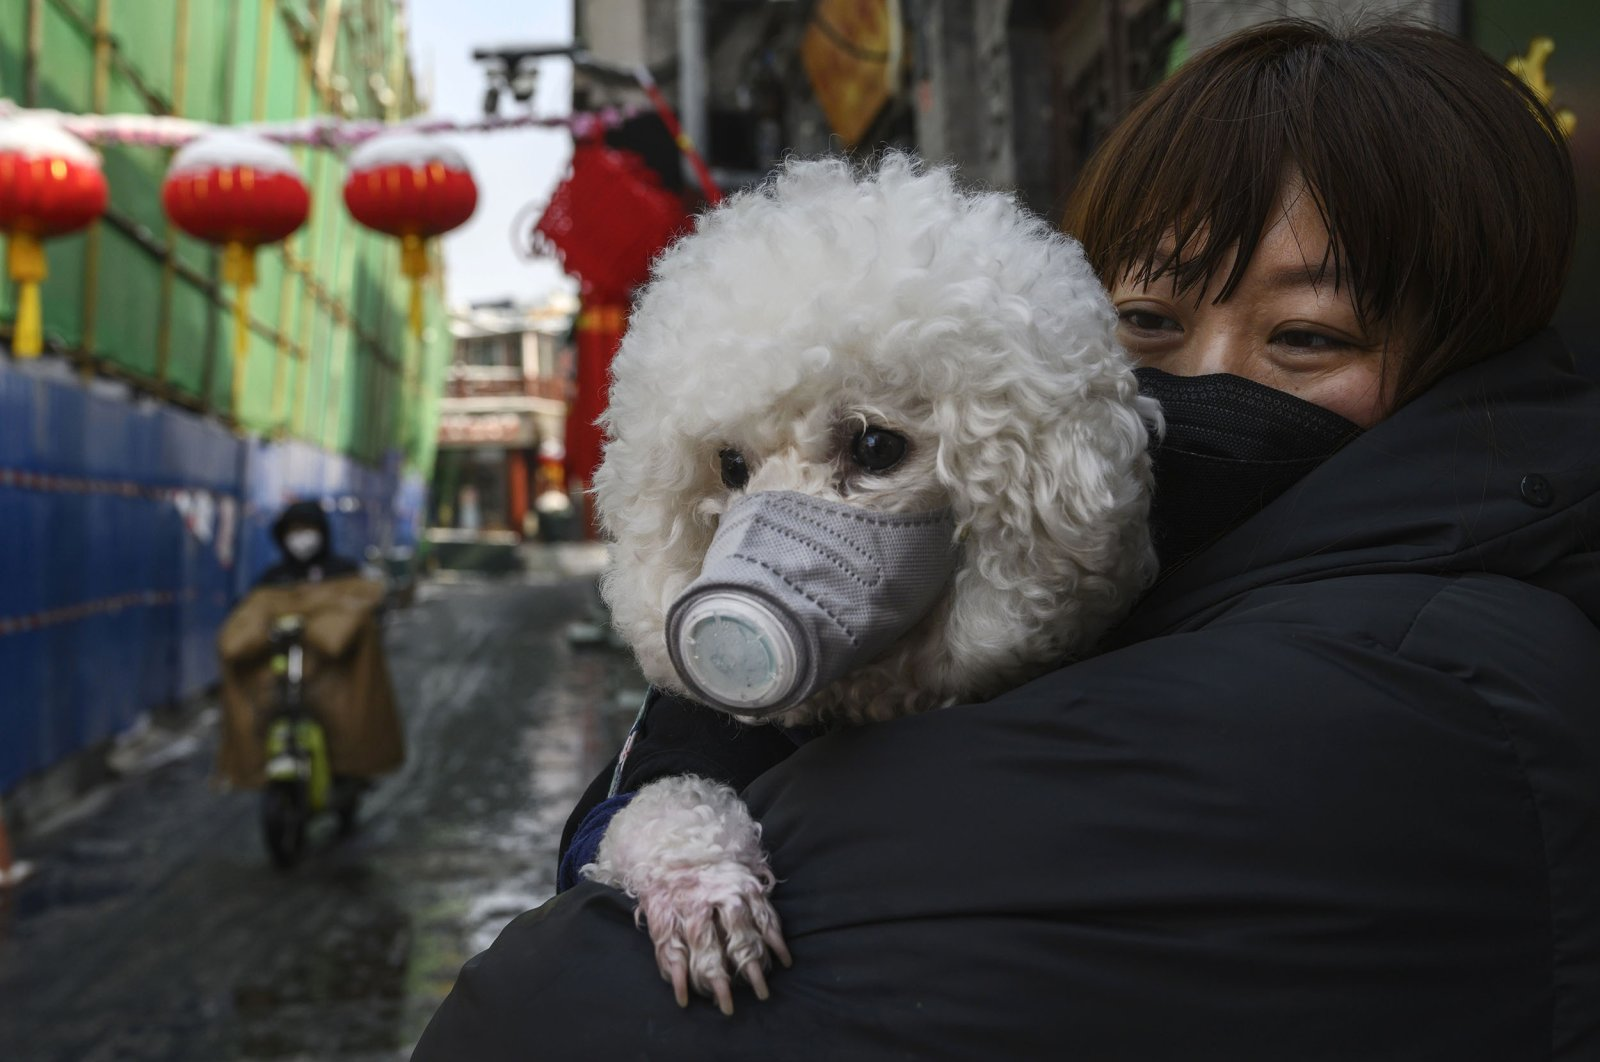 A Chinese woman holds her dog that is wearing a protective mask as they stand in the street in Beijing, China, Feb. 7, 2020. (Getty Images)